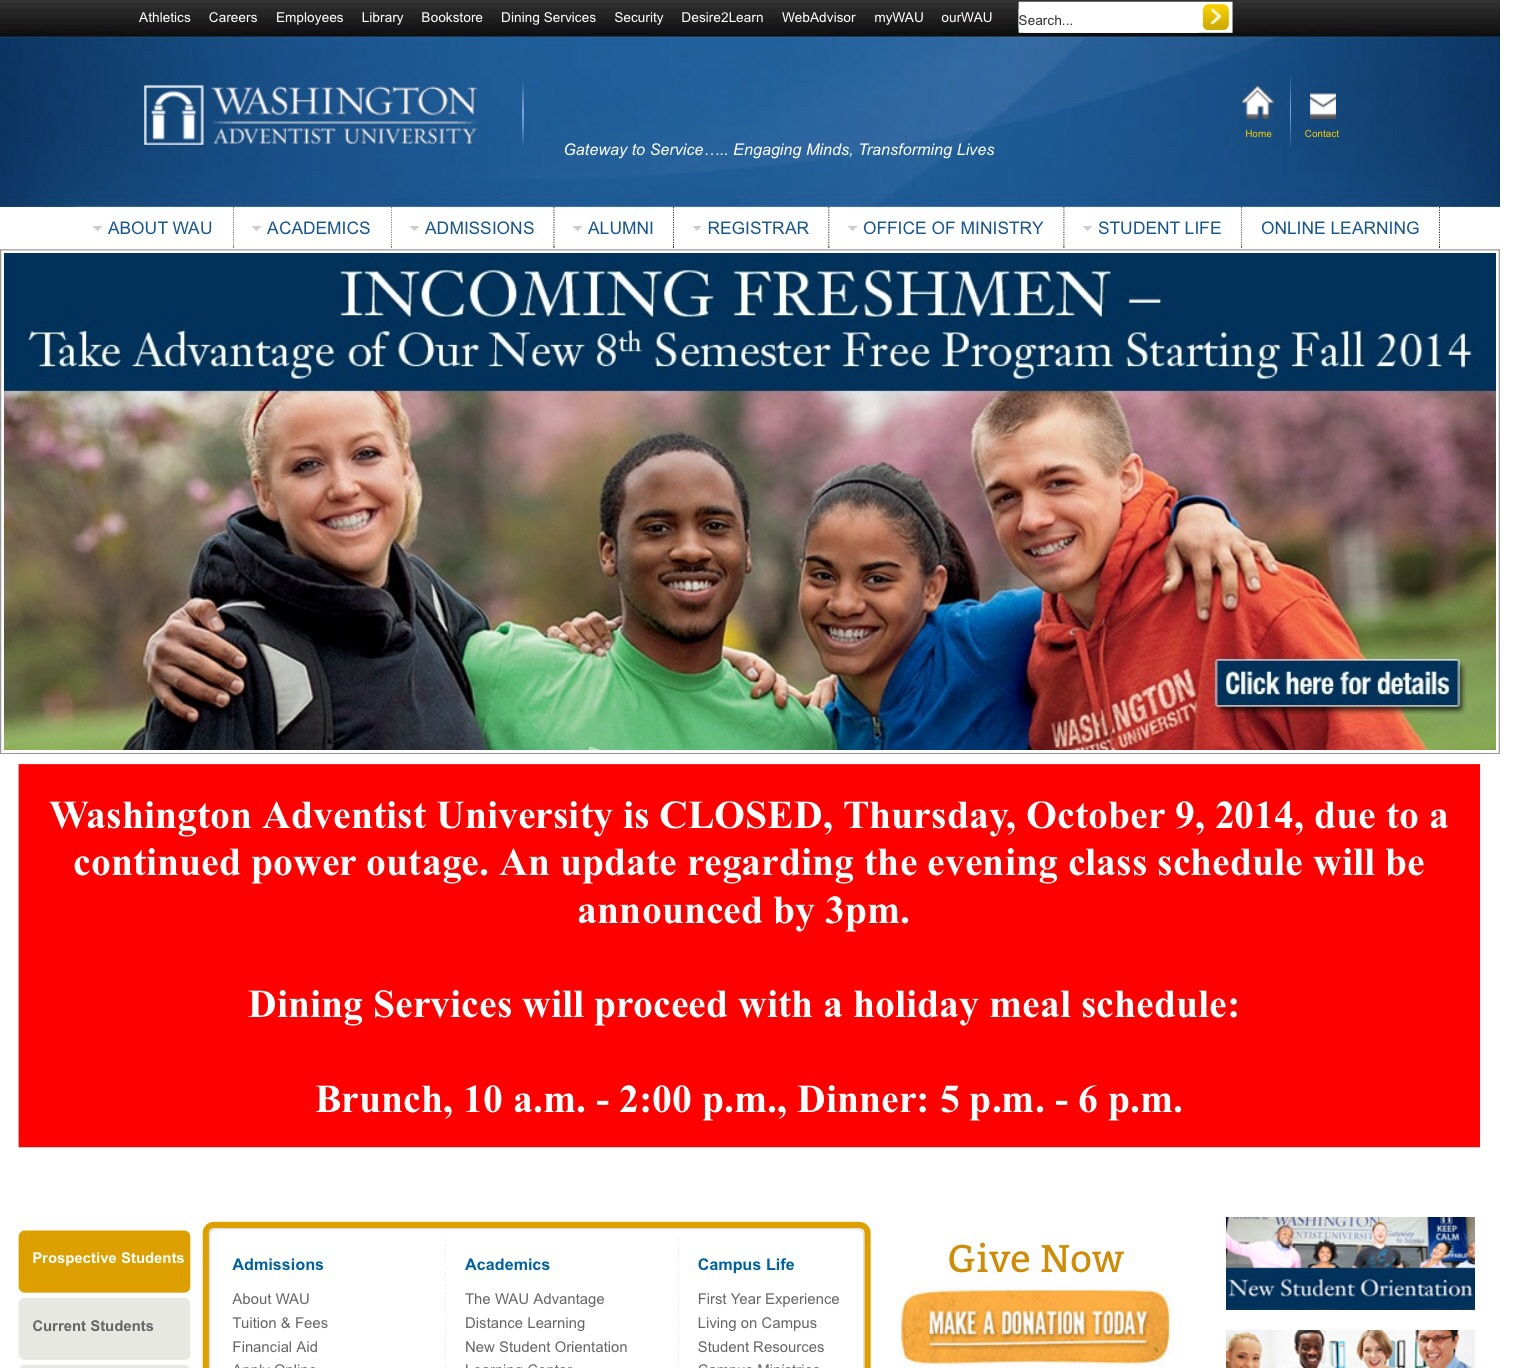 Washington Adventist University schedules power outage to save money